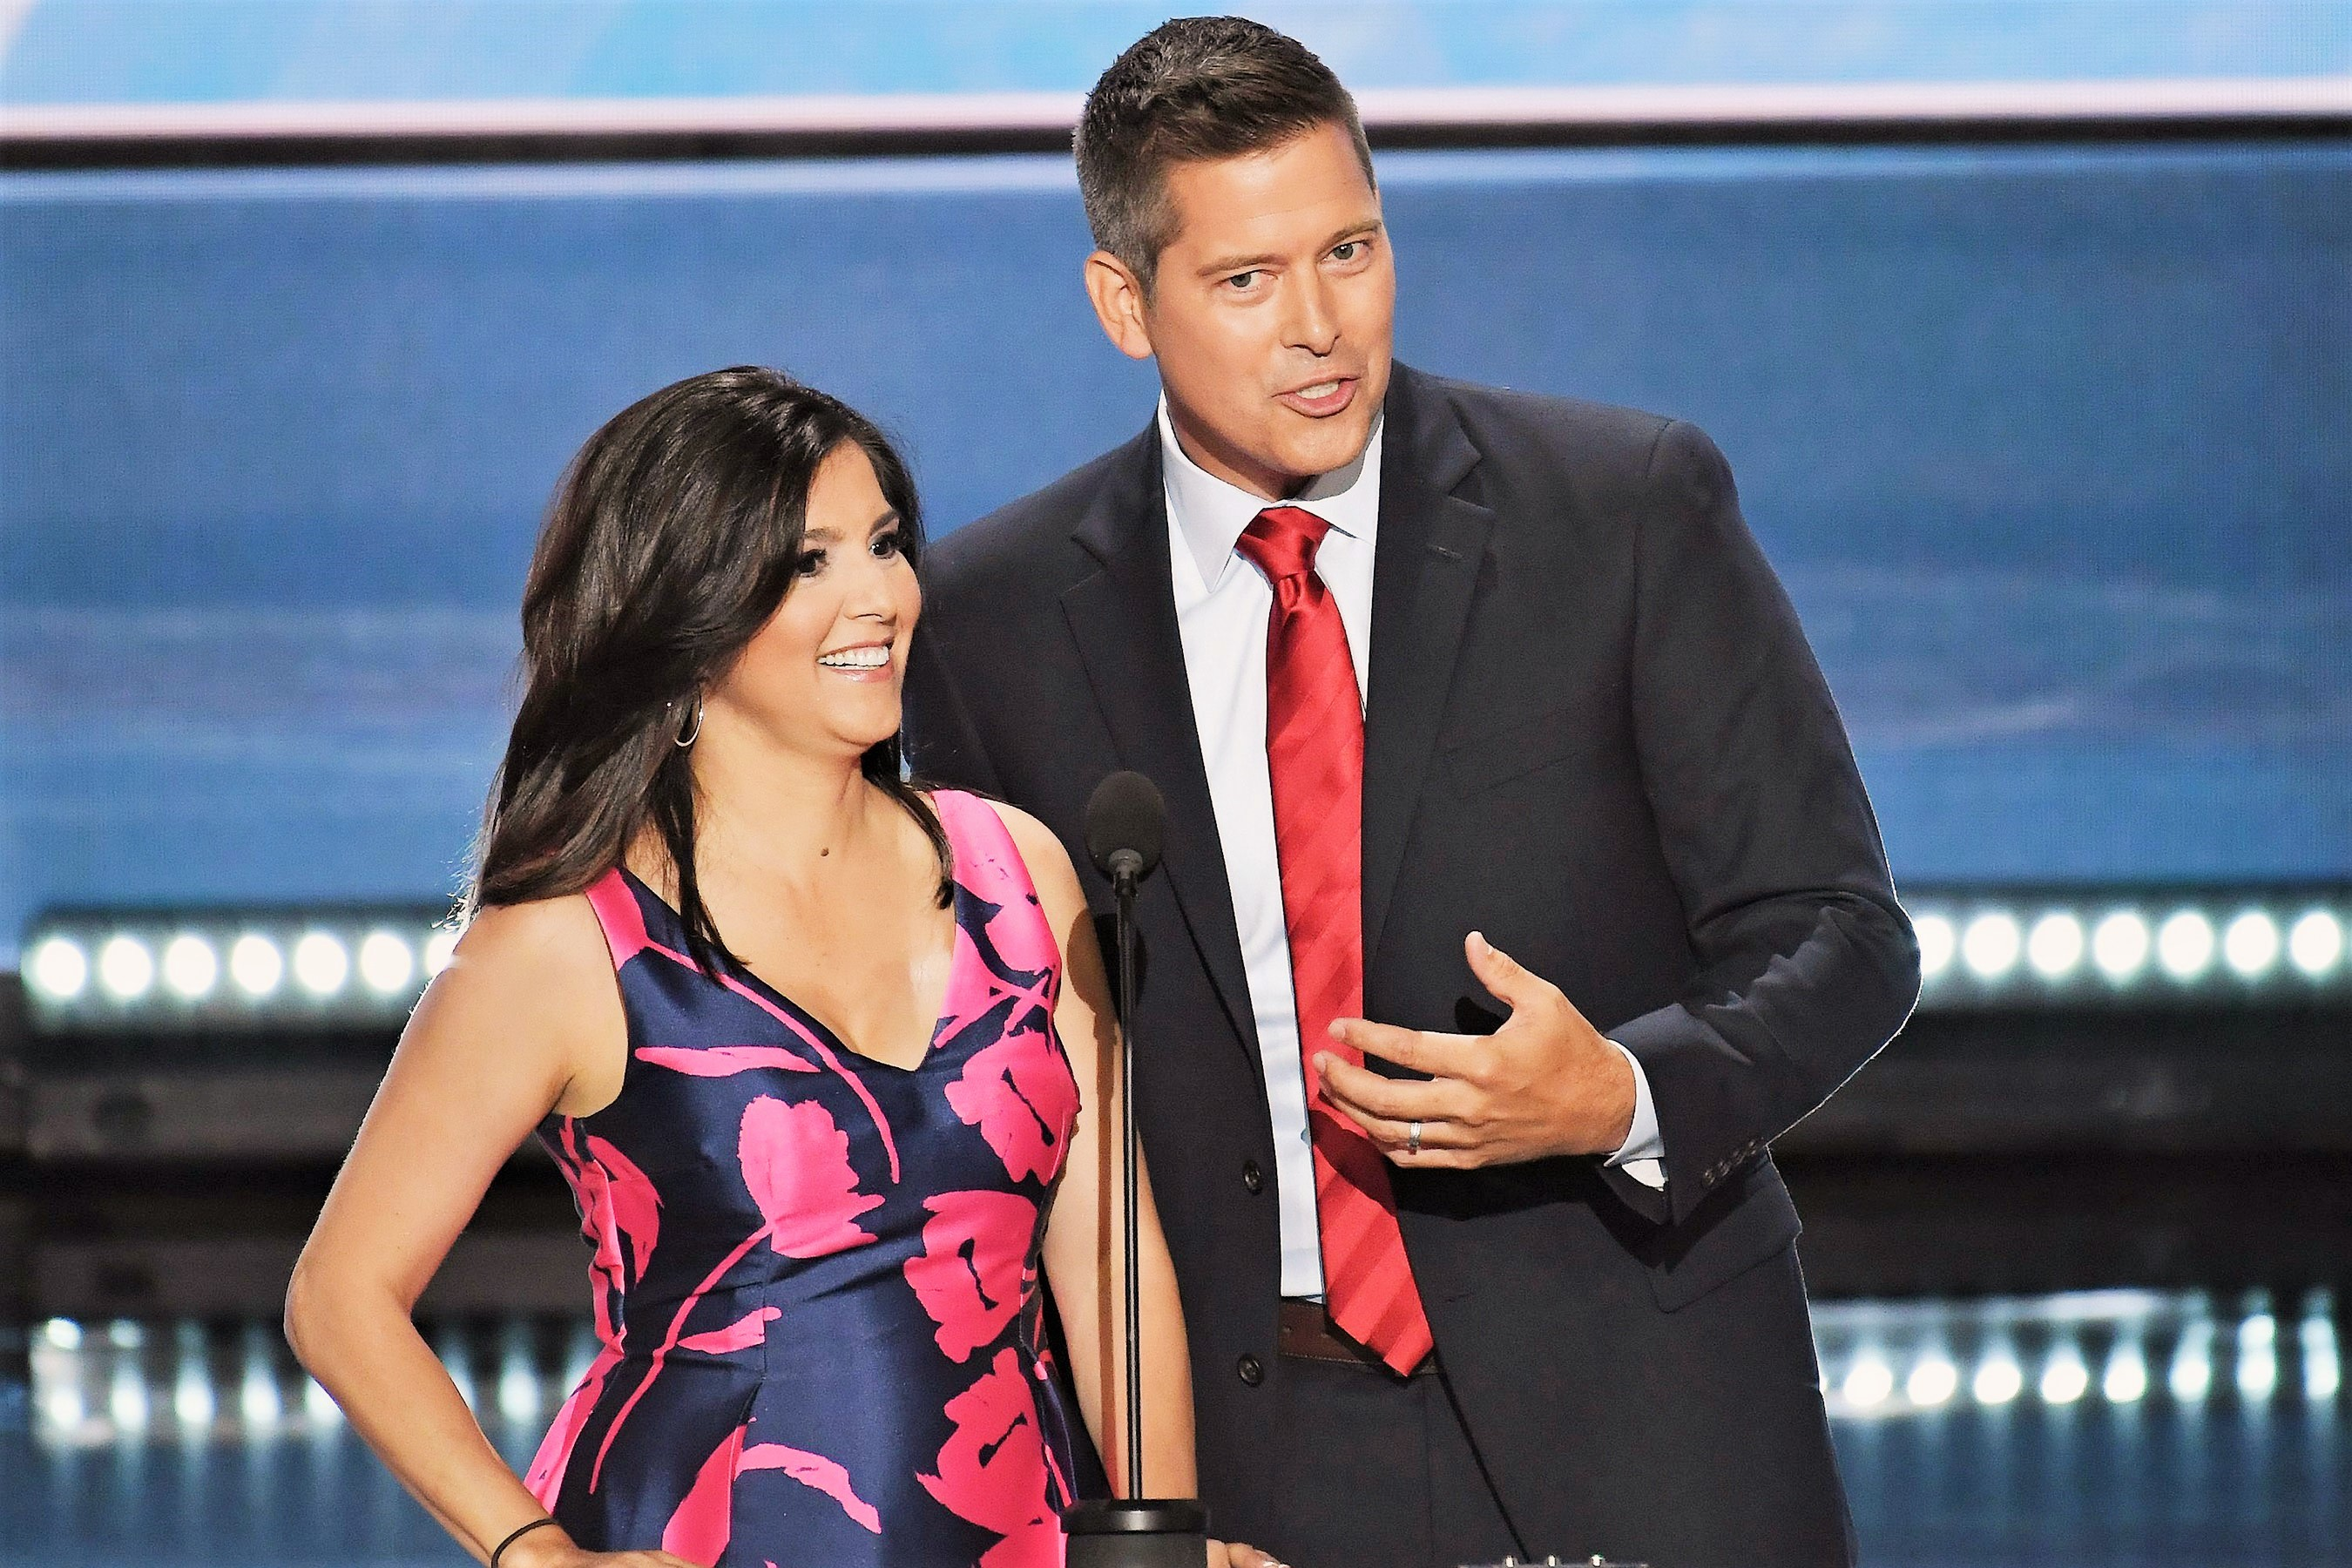 Sean Duffy to 'Step Down' from Congressman Duties Due to 'Complications' with 9th Baby on the Way